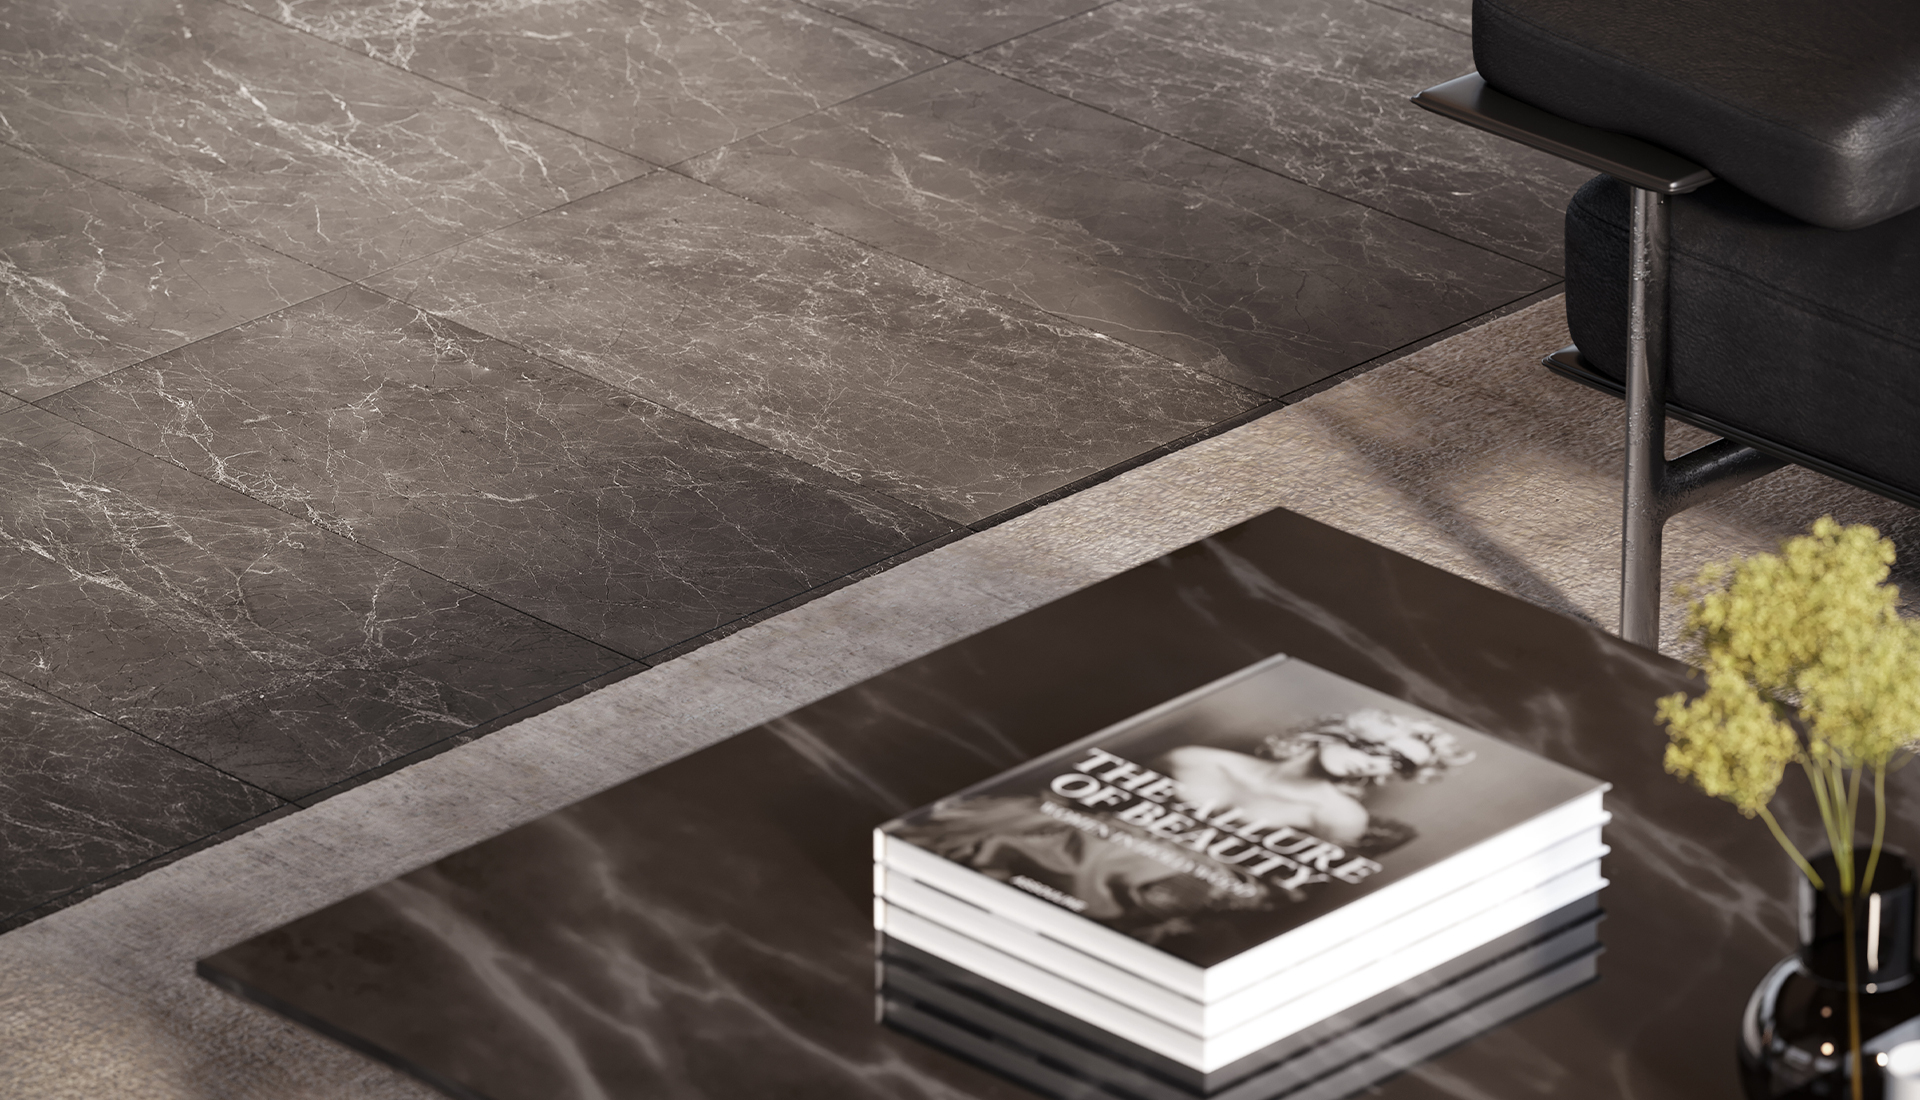 12 x 24 in / 30.5 x 61 cm Stark Carbon Polished Marble Tile